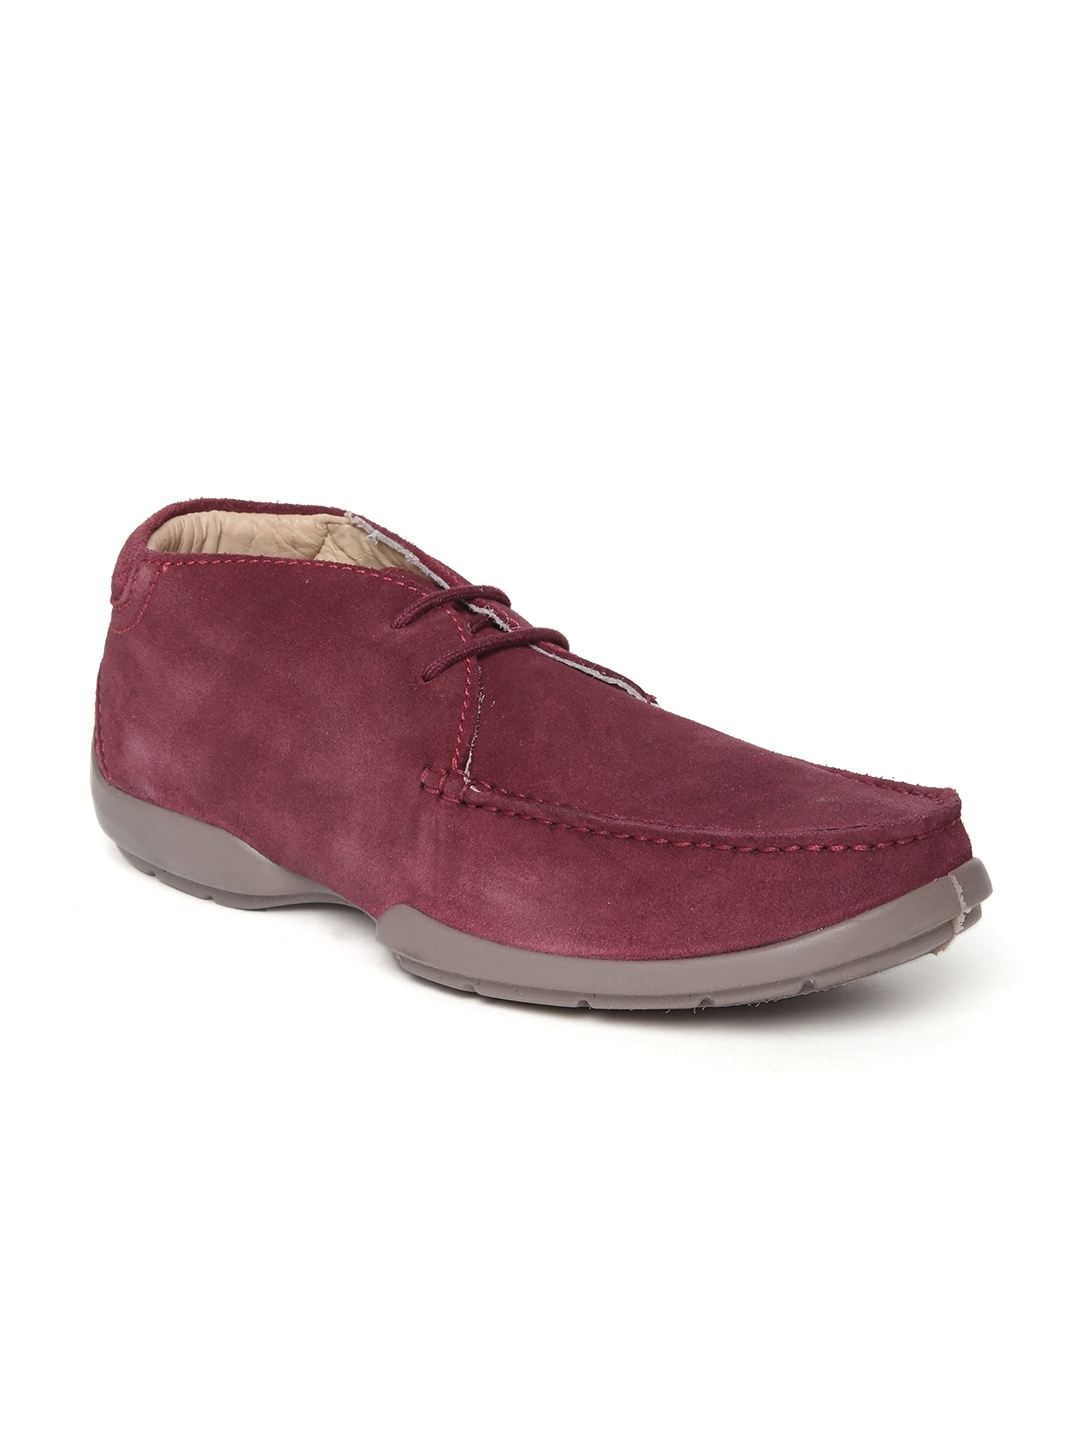 myntra woodland burgundy suede casual shoes 829106